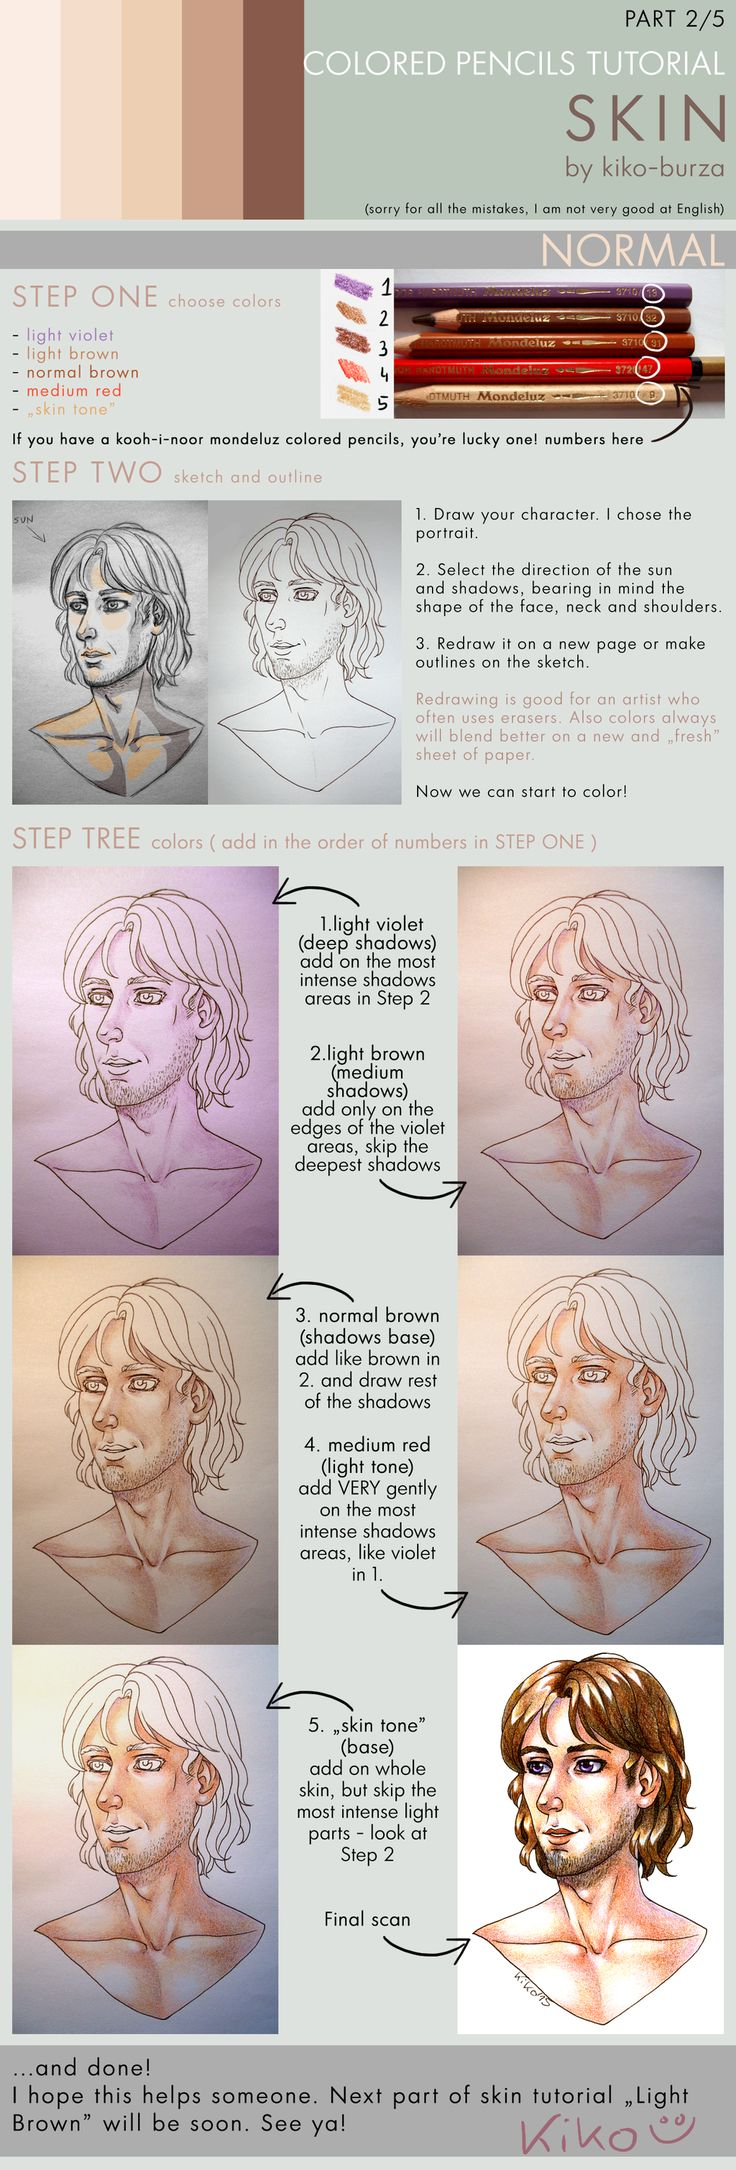 100 best Colored Pencil Tutorials images on Pinterest | Colored ...